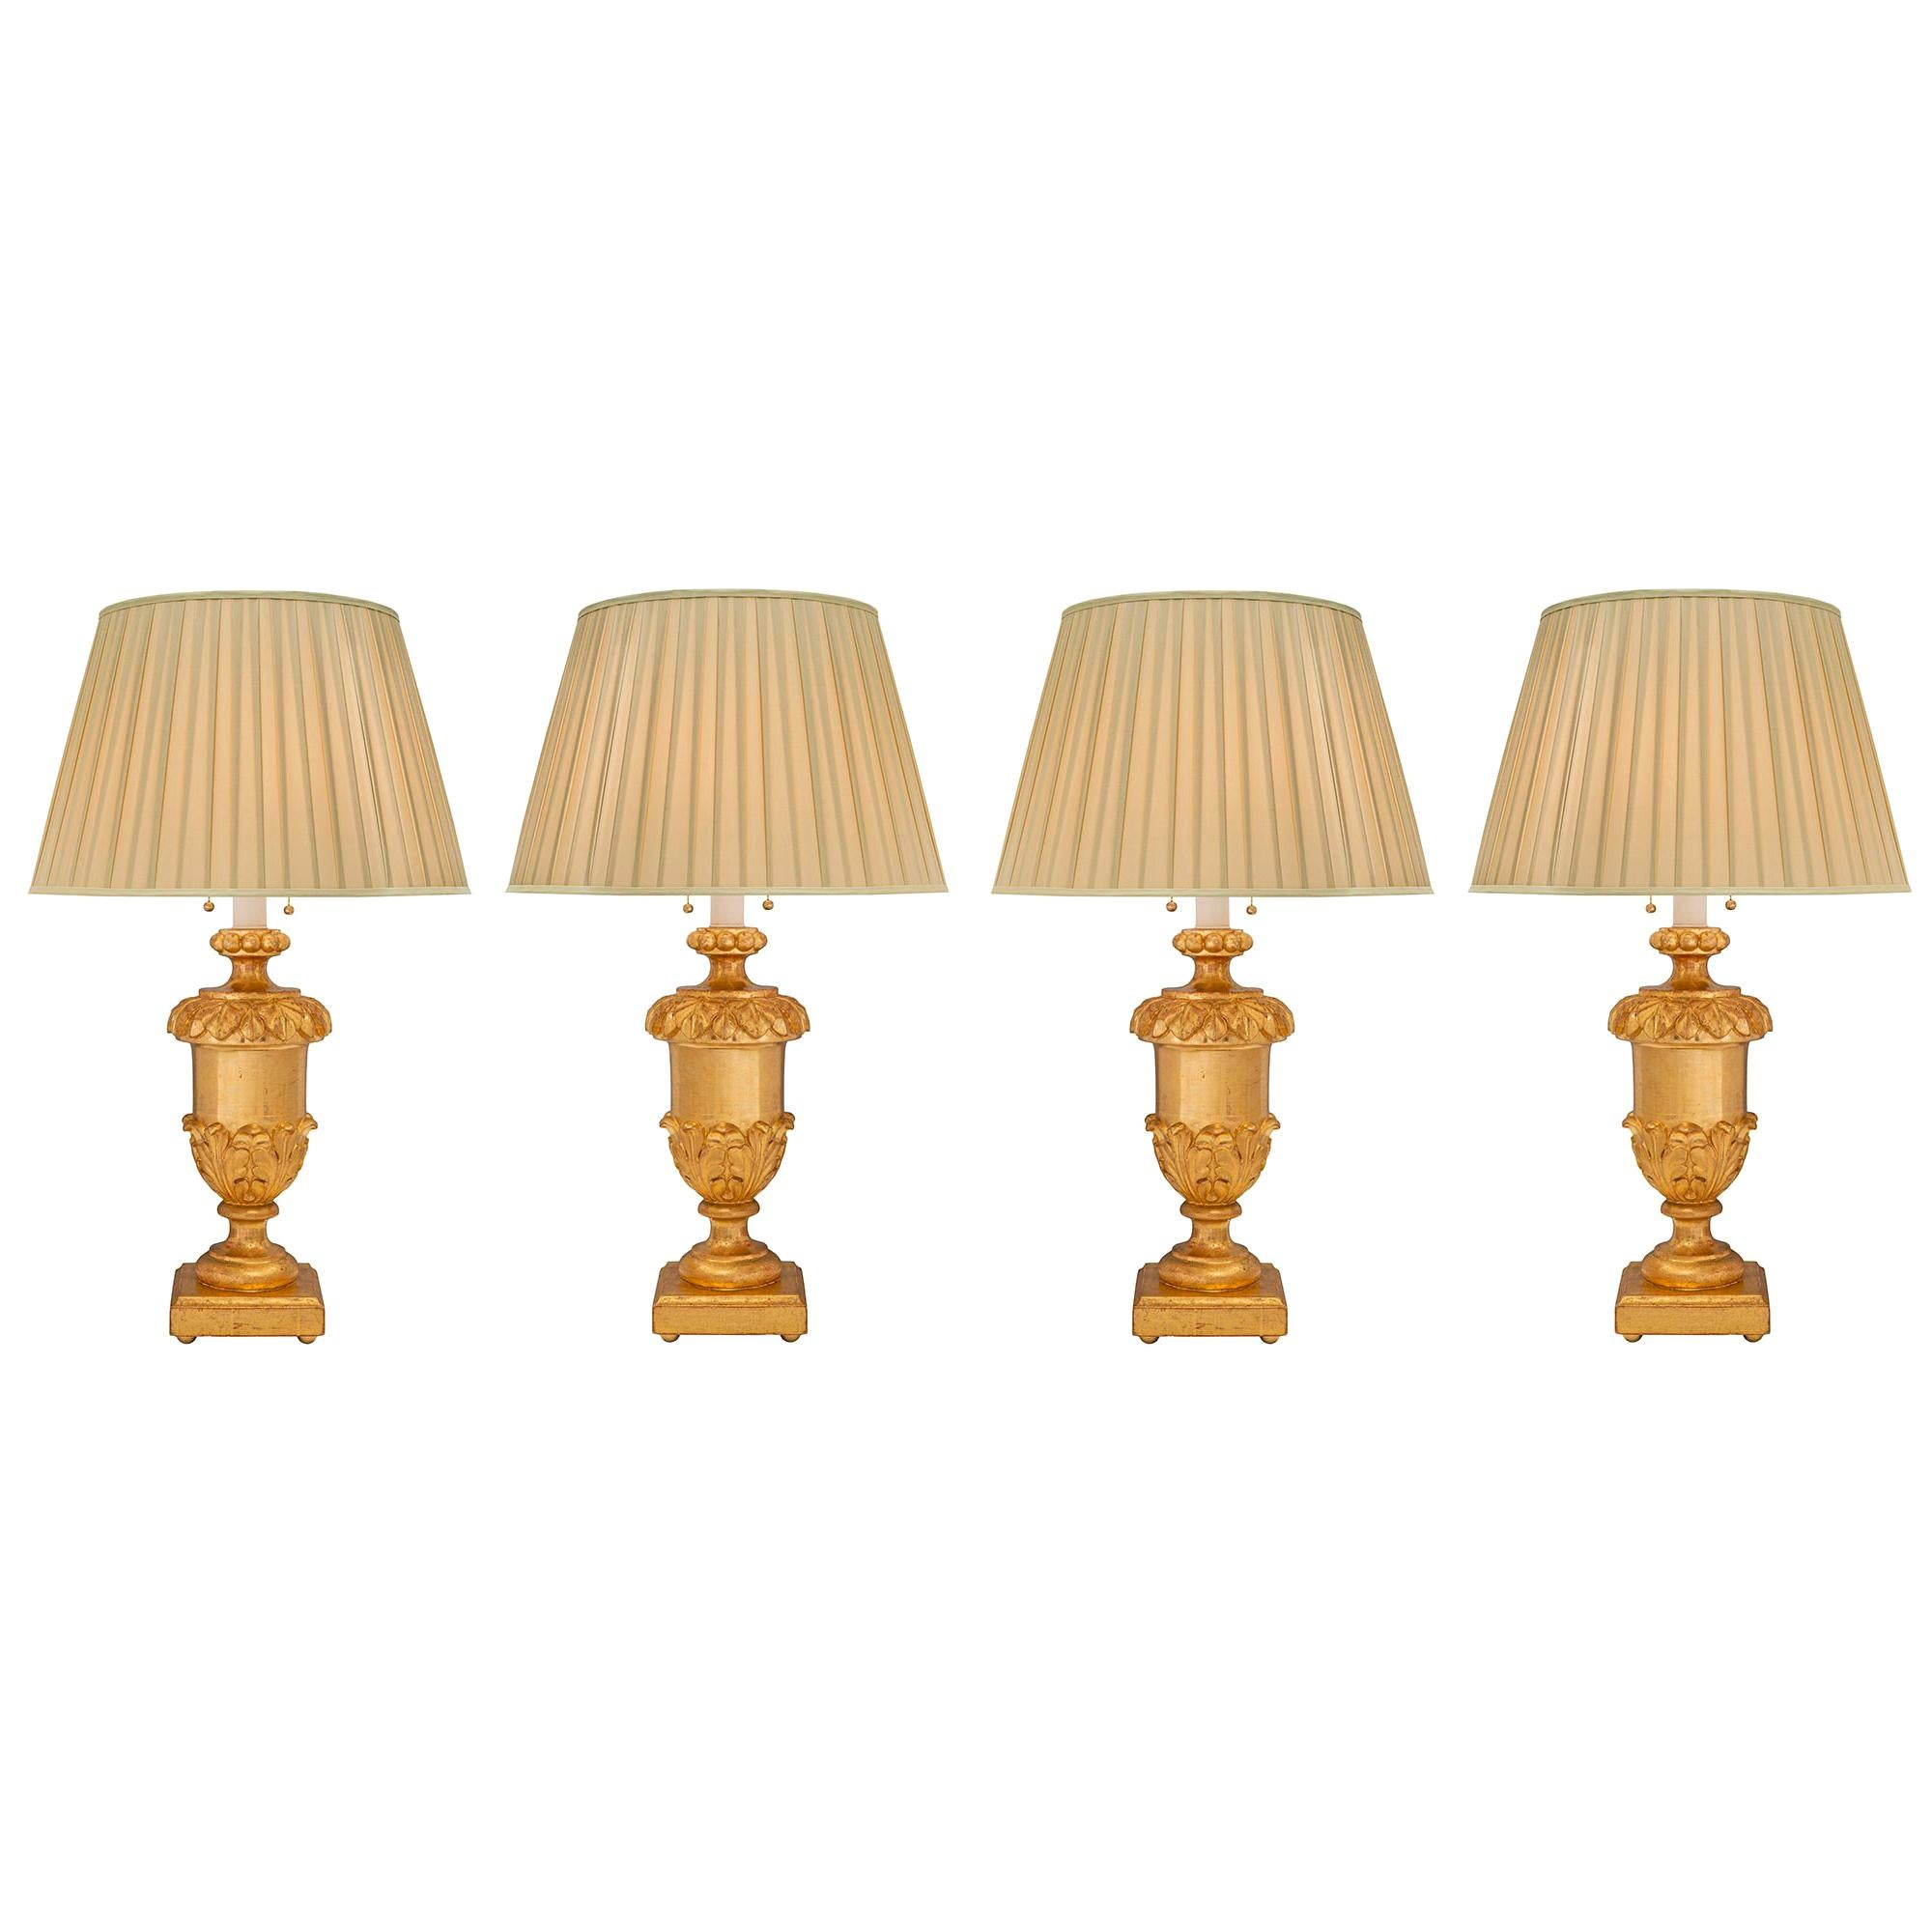 Set of Four Italian 18th Louis XVI Period Giltwood Lamps